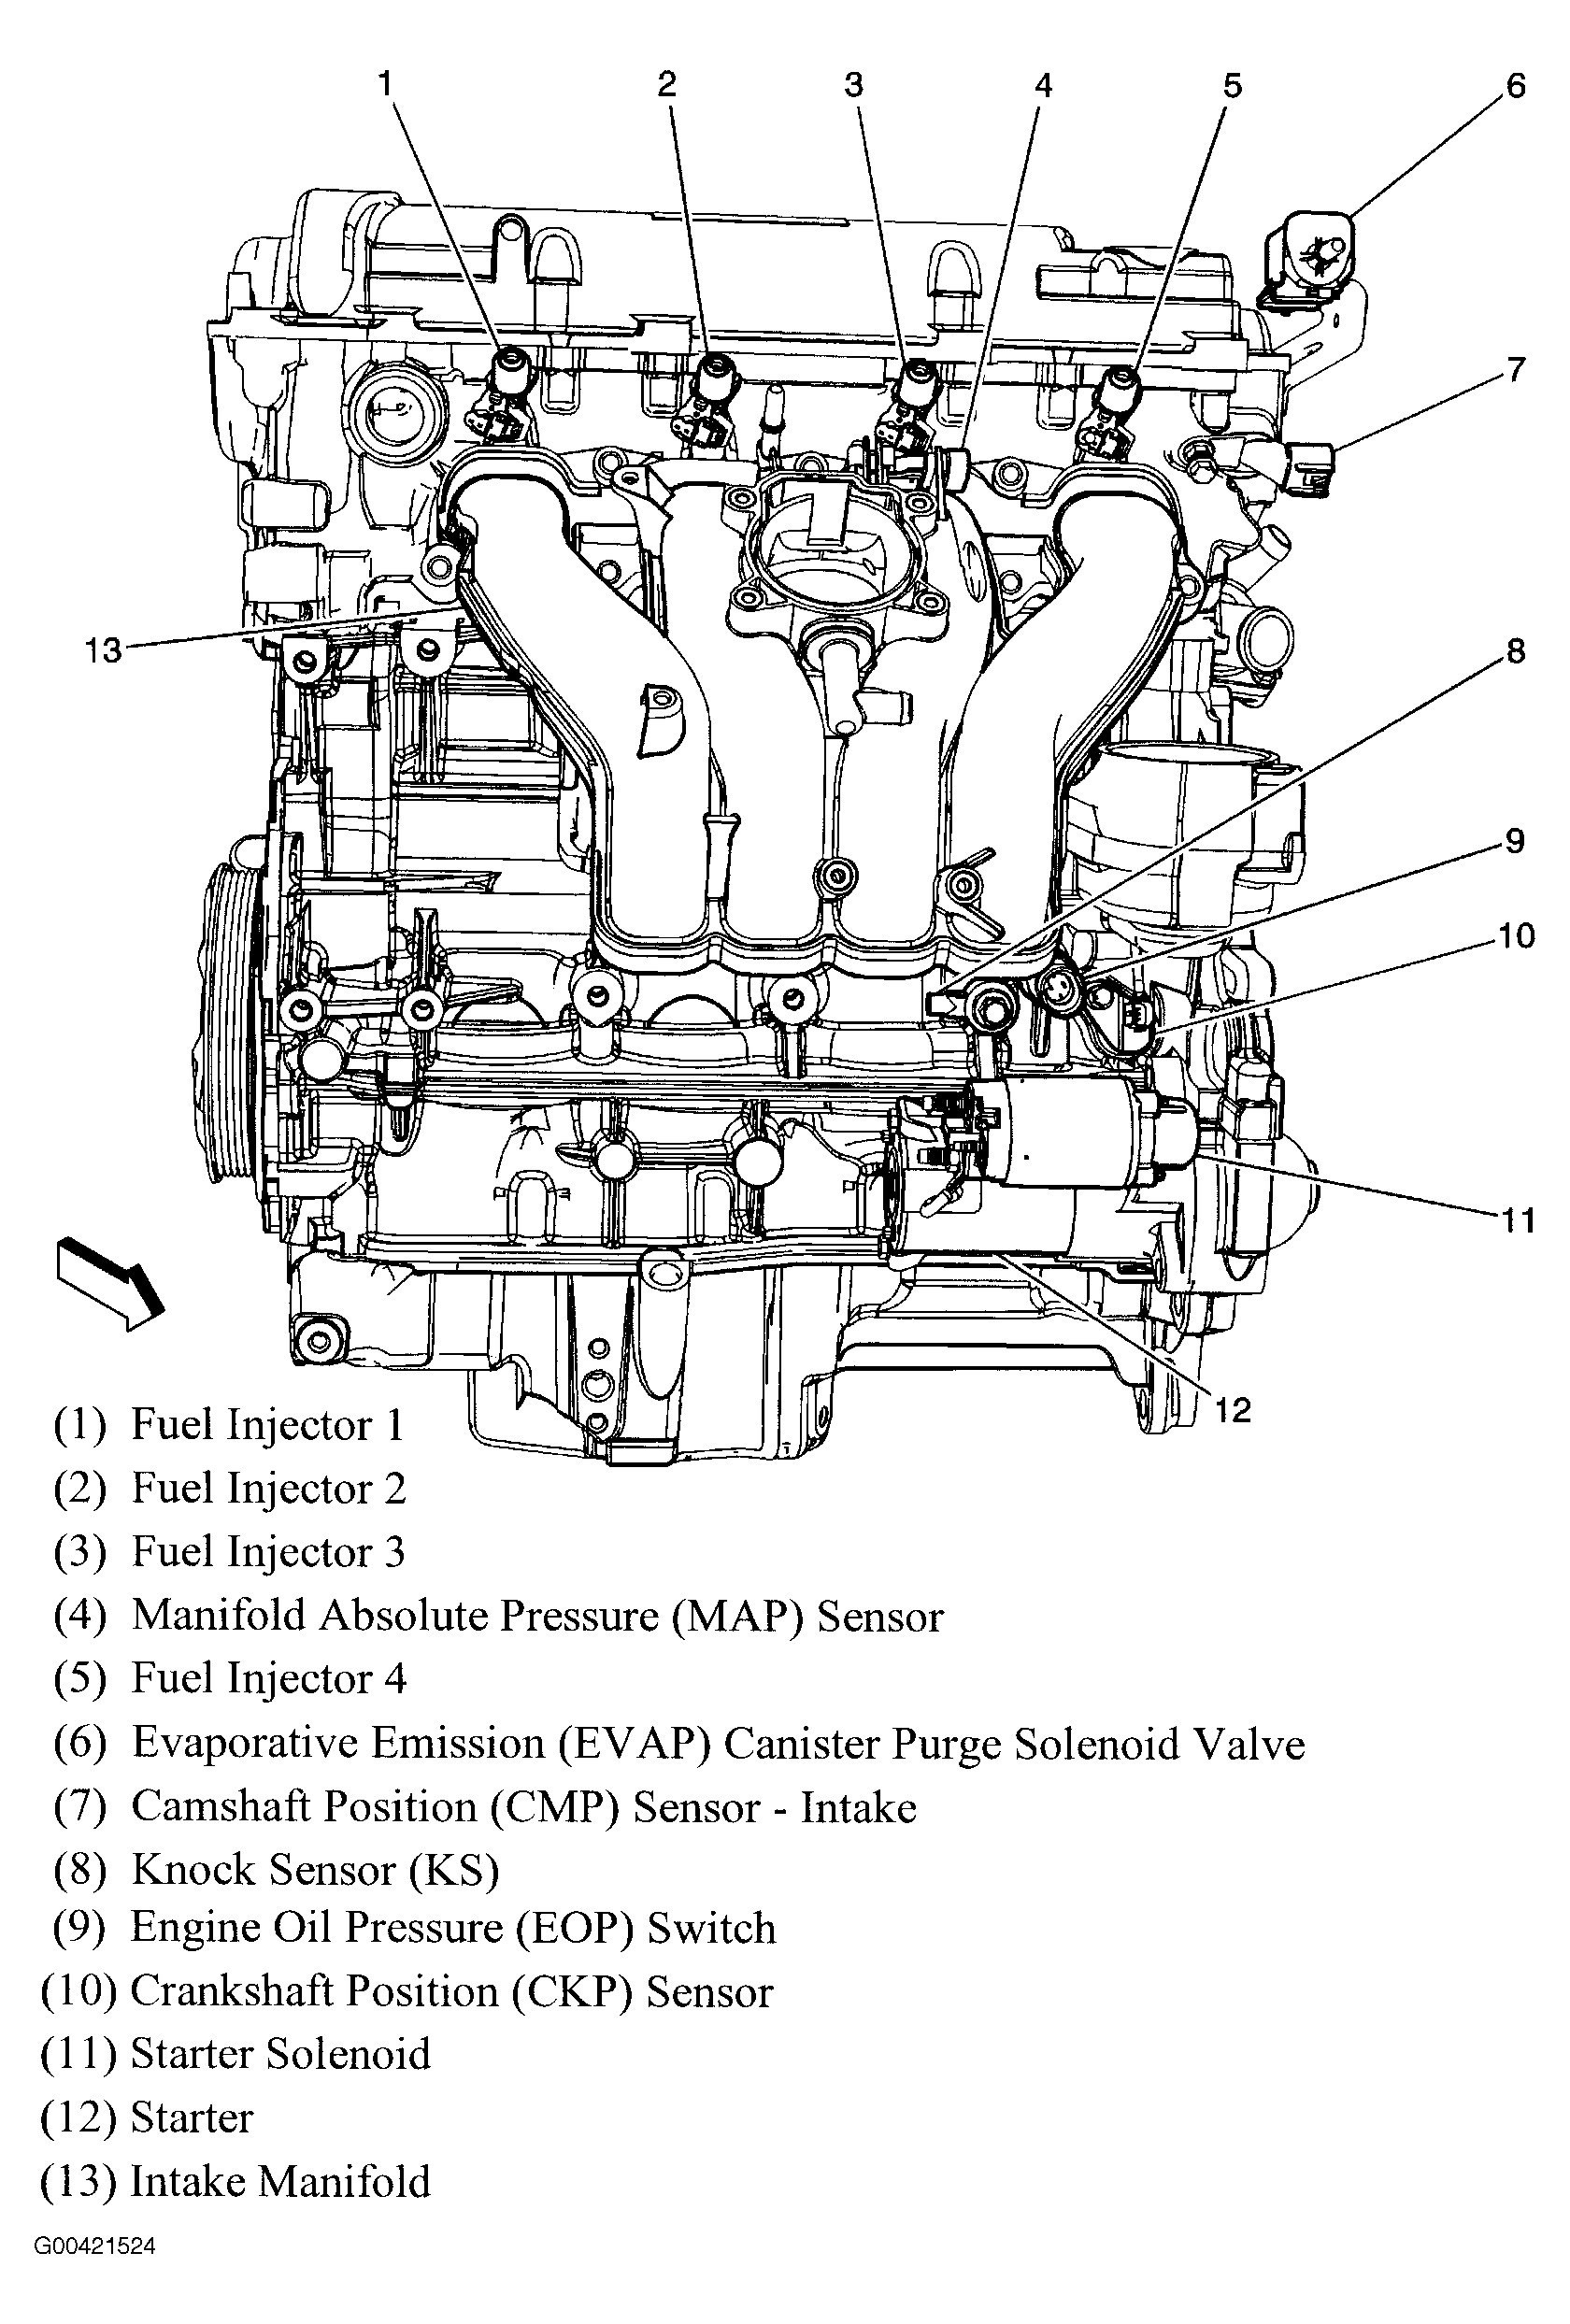 2006 Grand Prix Engine Diagram 2005 Pontiac Montana Wiring Diagram Of 2006 Grand Prix Engine Diagram